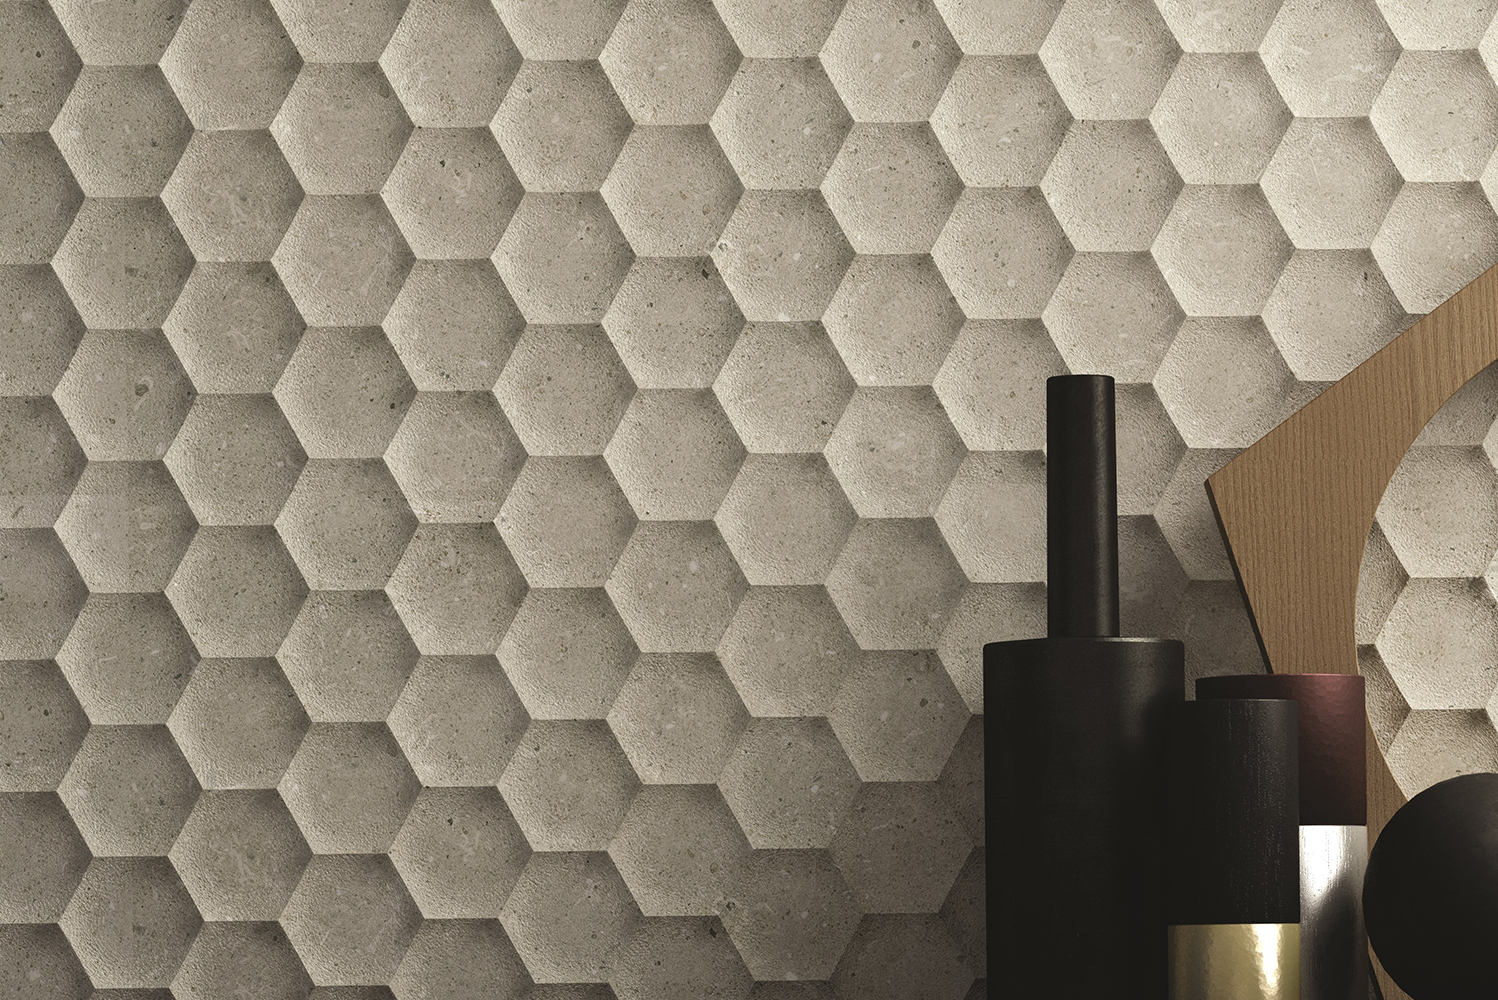 Walker Zanger recreated the look and feel of carved limestone through the new Bera & Beren collection of porcelain floor and ceramic wall tiles.